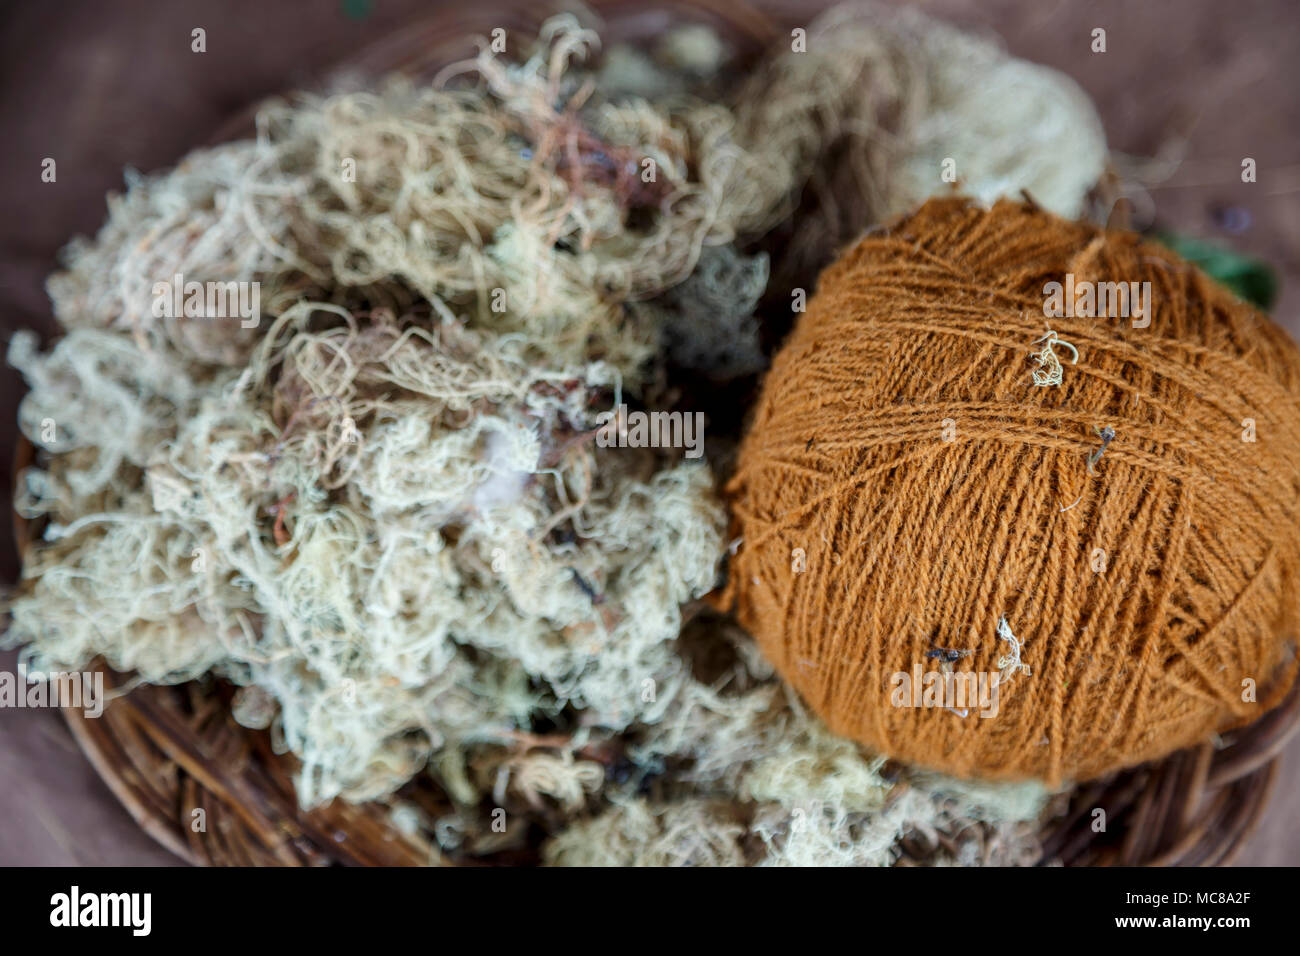 Ball of wool and ingredients used to create color, El Balcon del Inka, Chinchero, Cusco, Peru - Stock Image